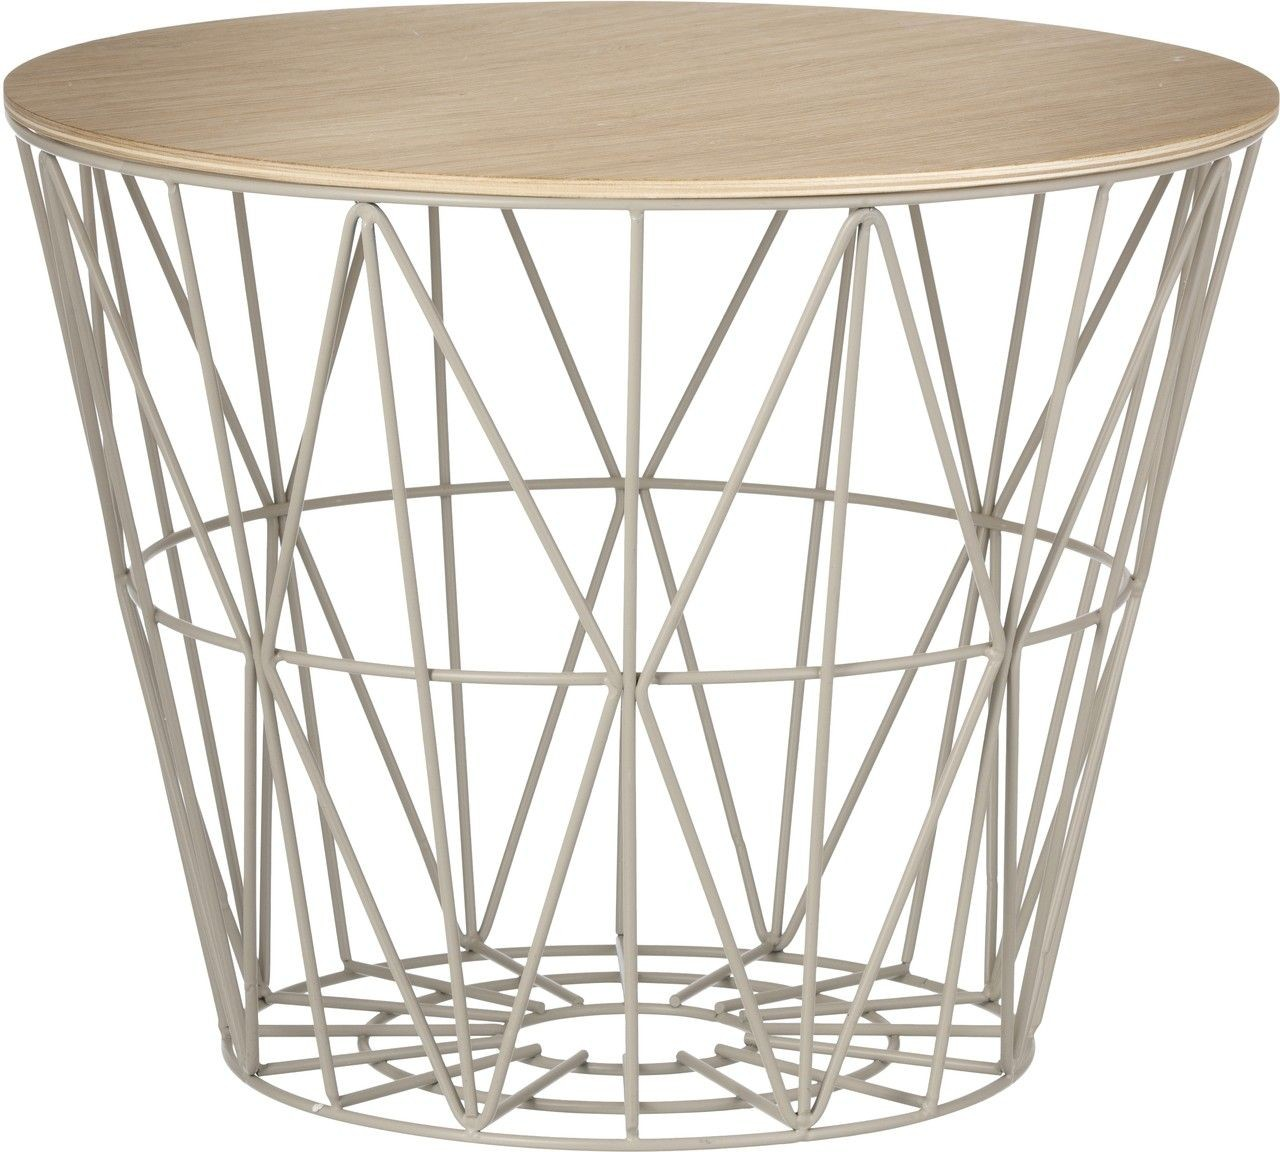 Ferm Living Wire Basket Deckel Eichenholz Hell ...